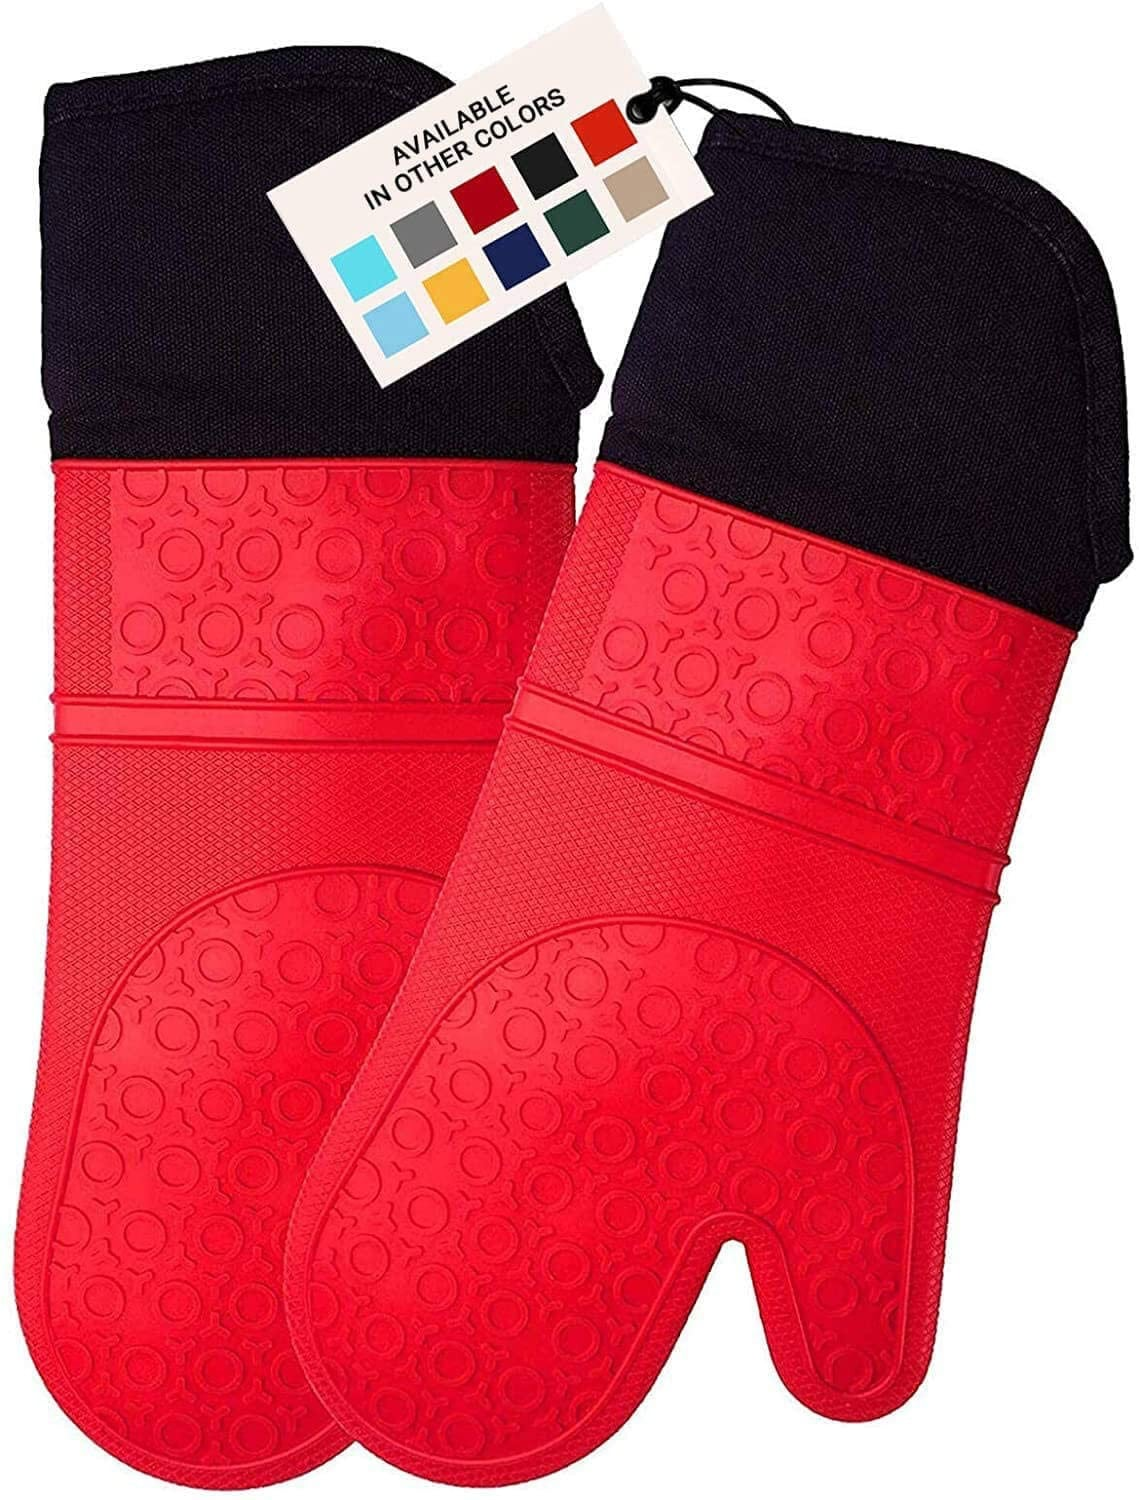 HOMWE Professional Oven Mitts